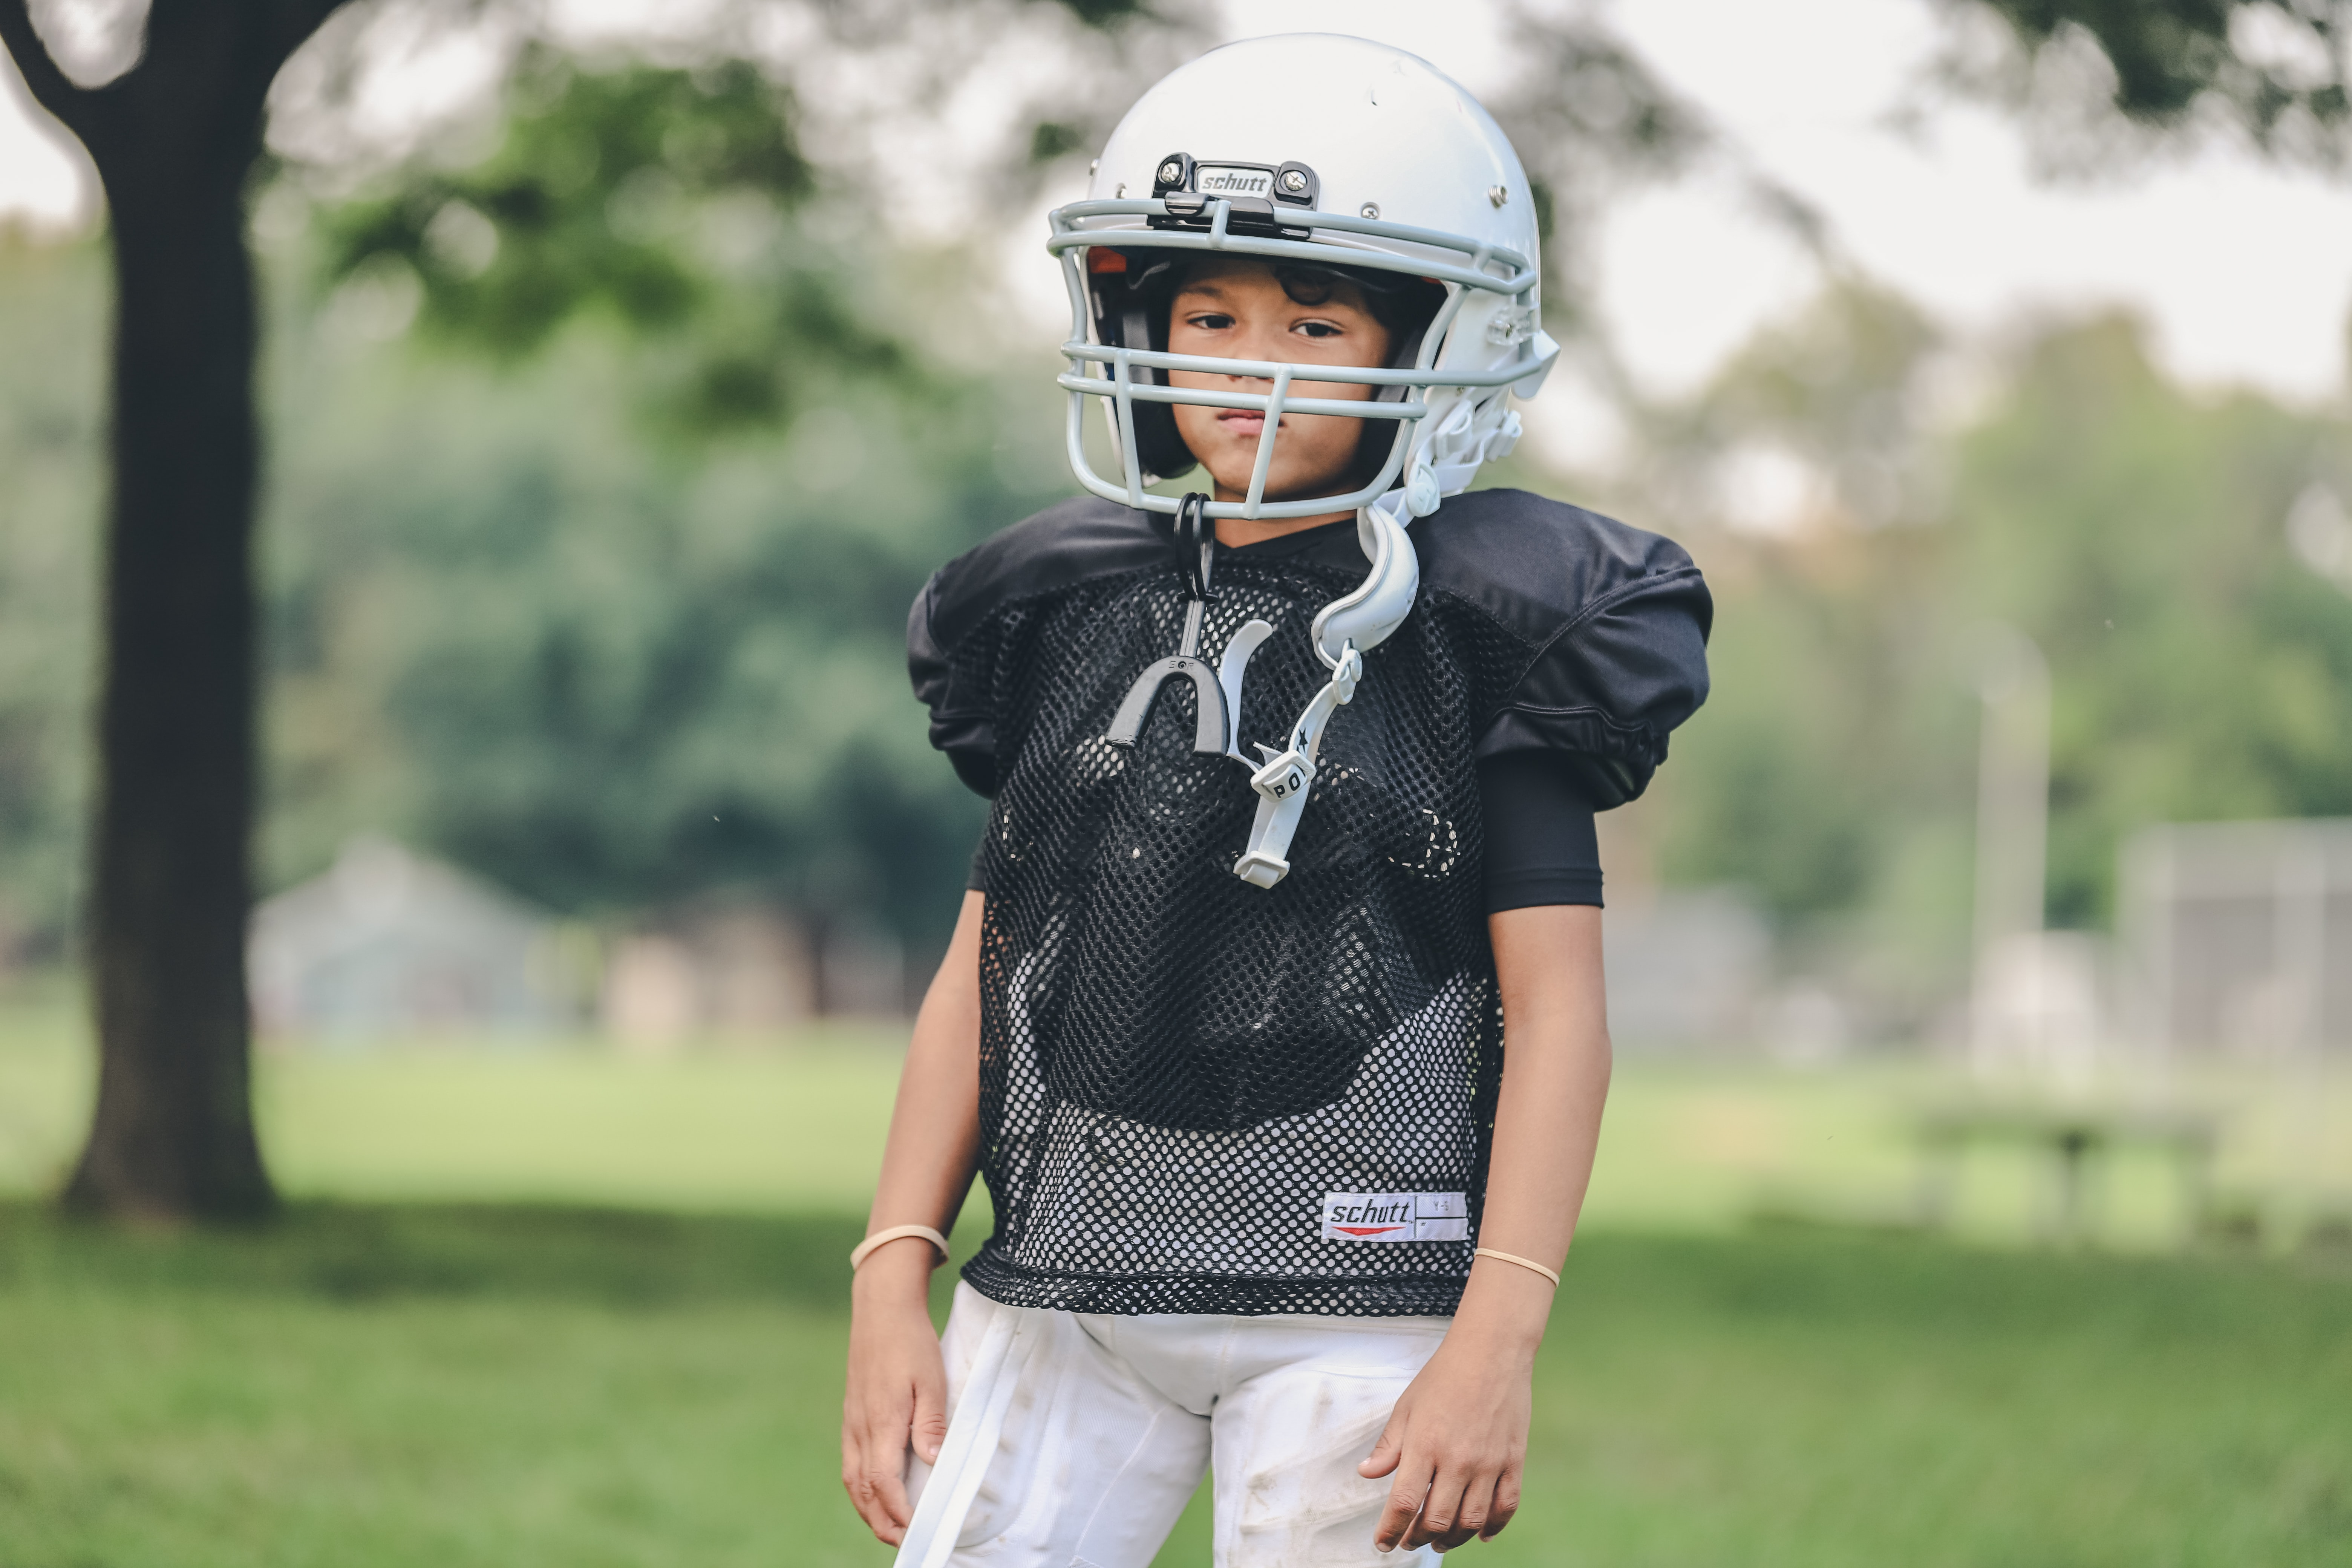 selective focus photography of boy wearing American football gear